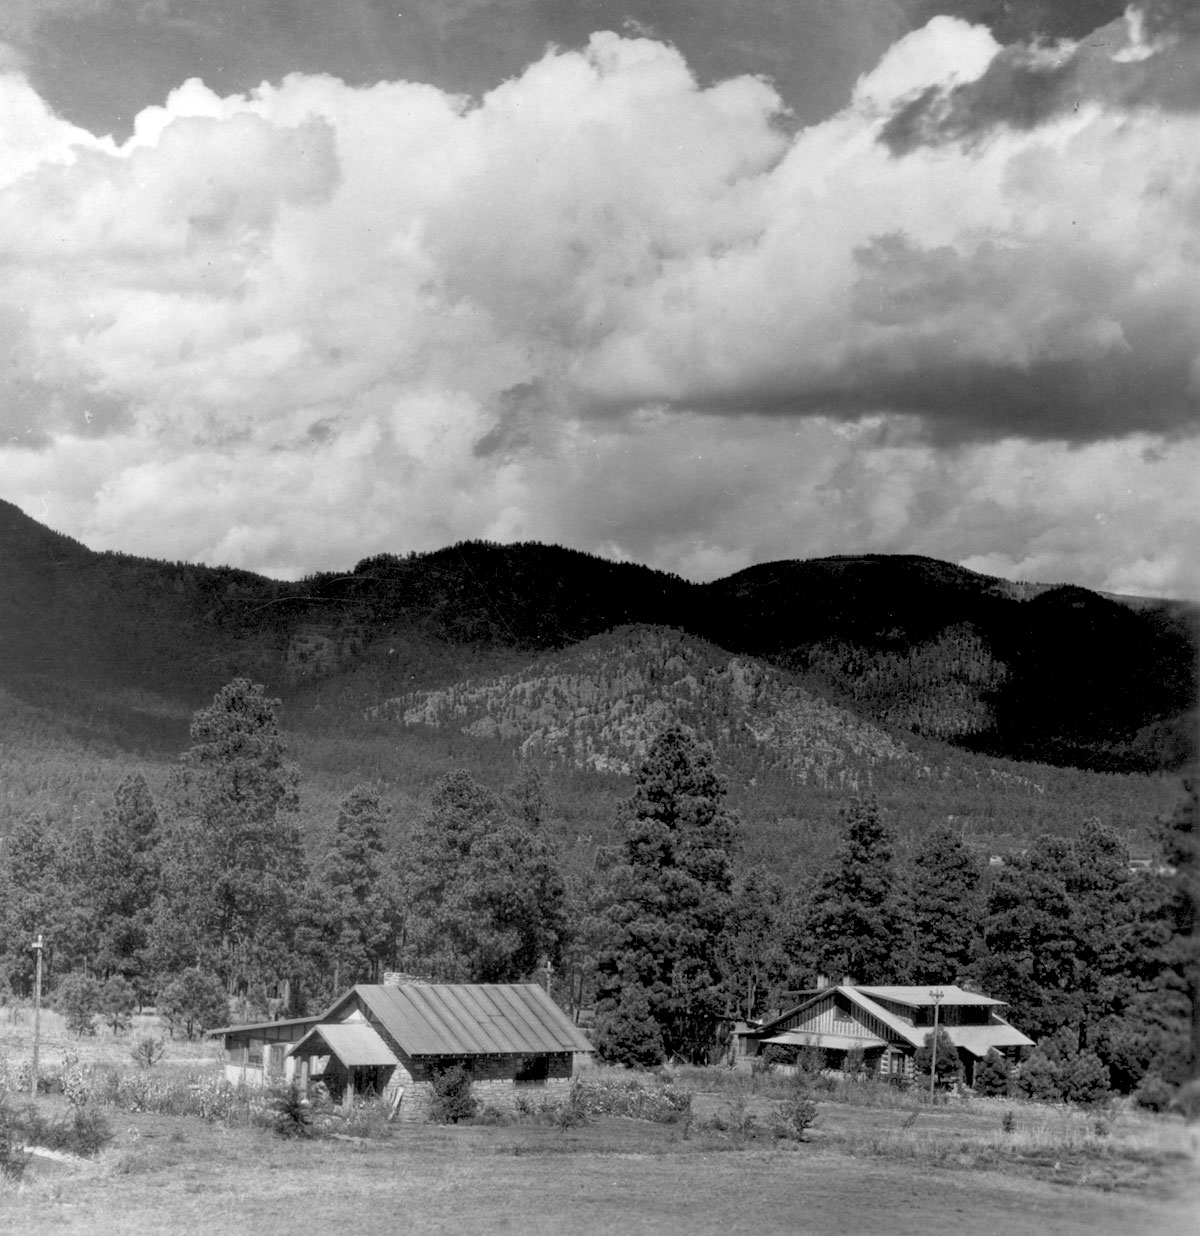 Los Alamos Ranch School Faculty Housing